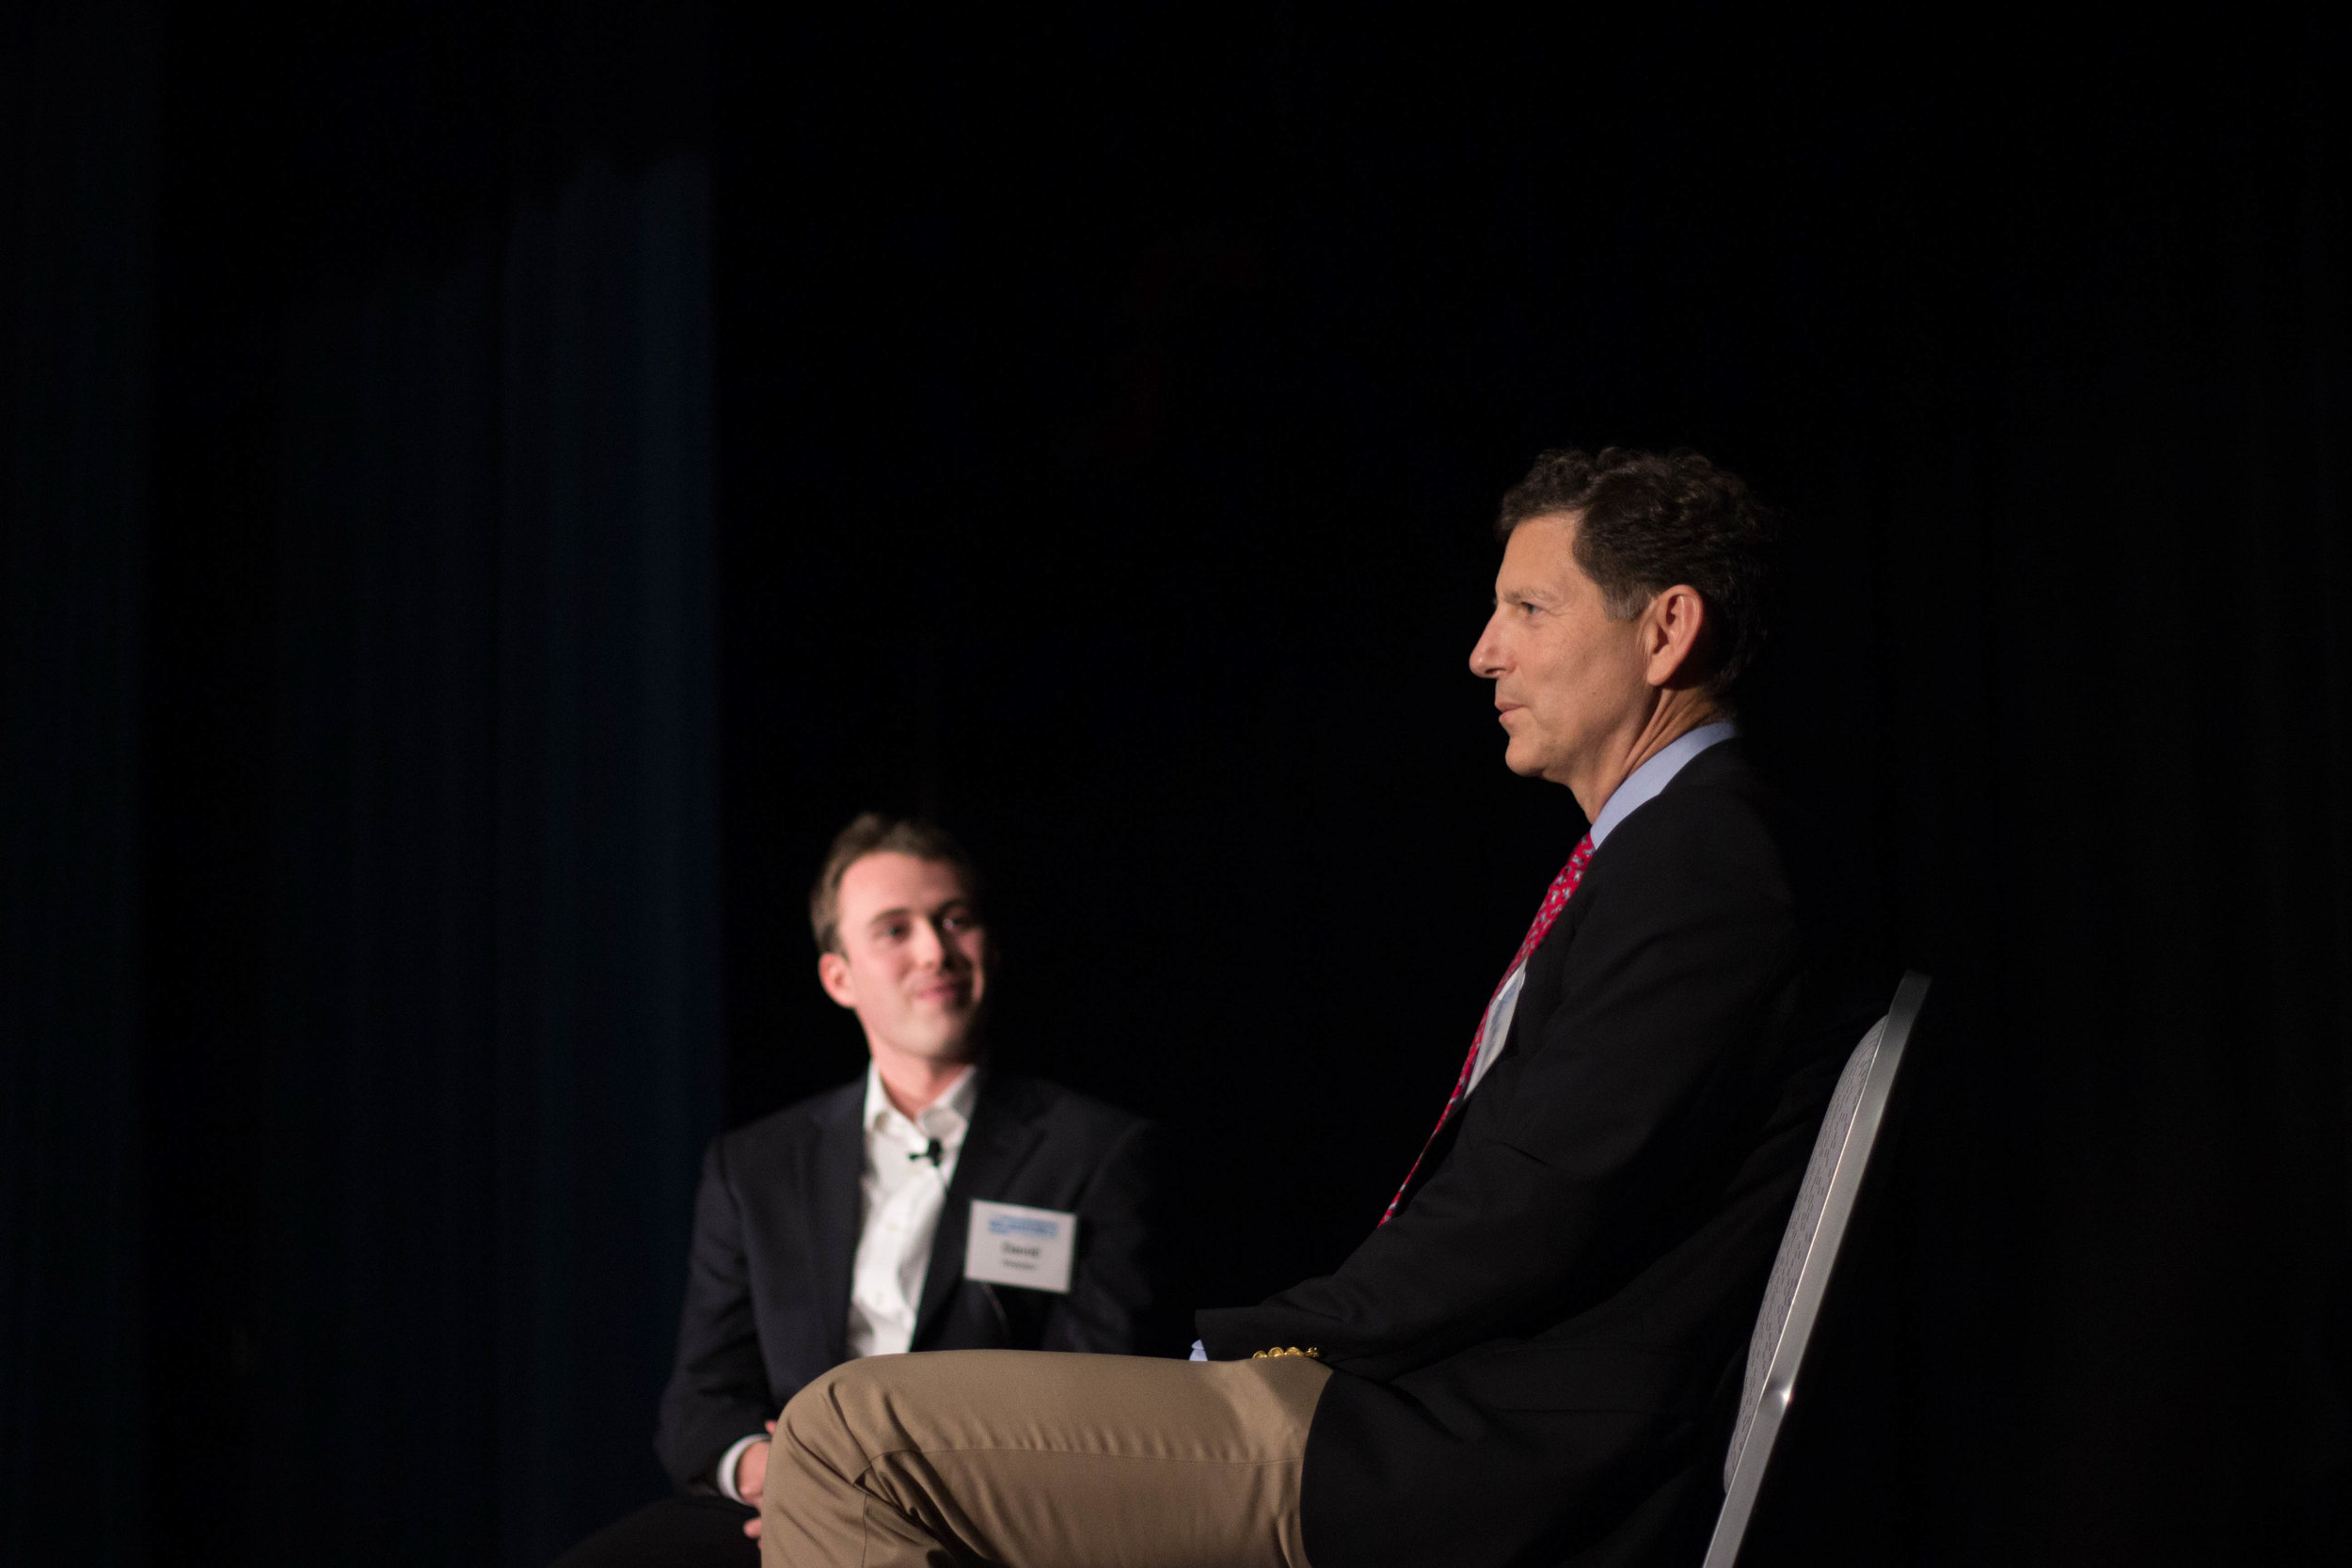 David Walden ('14, MAC '15) interviewing Tom Darden ('76) about ambition, calling and investment.